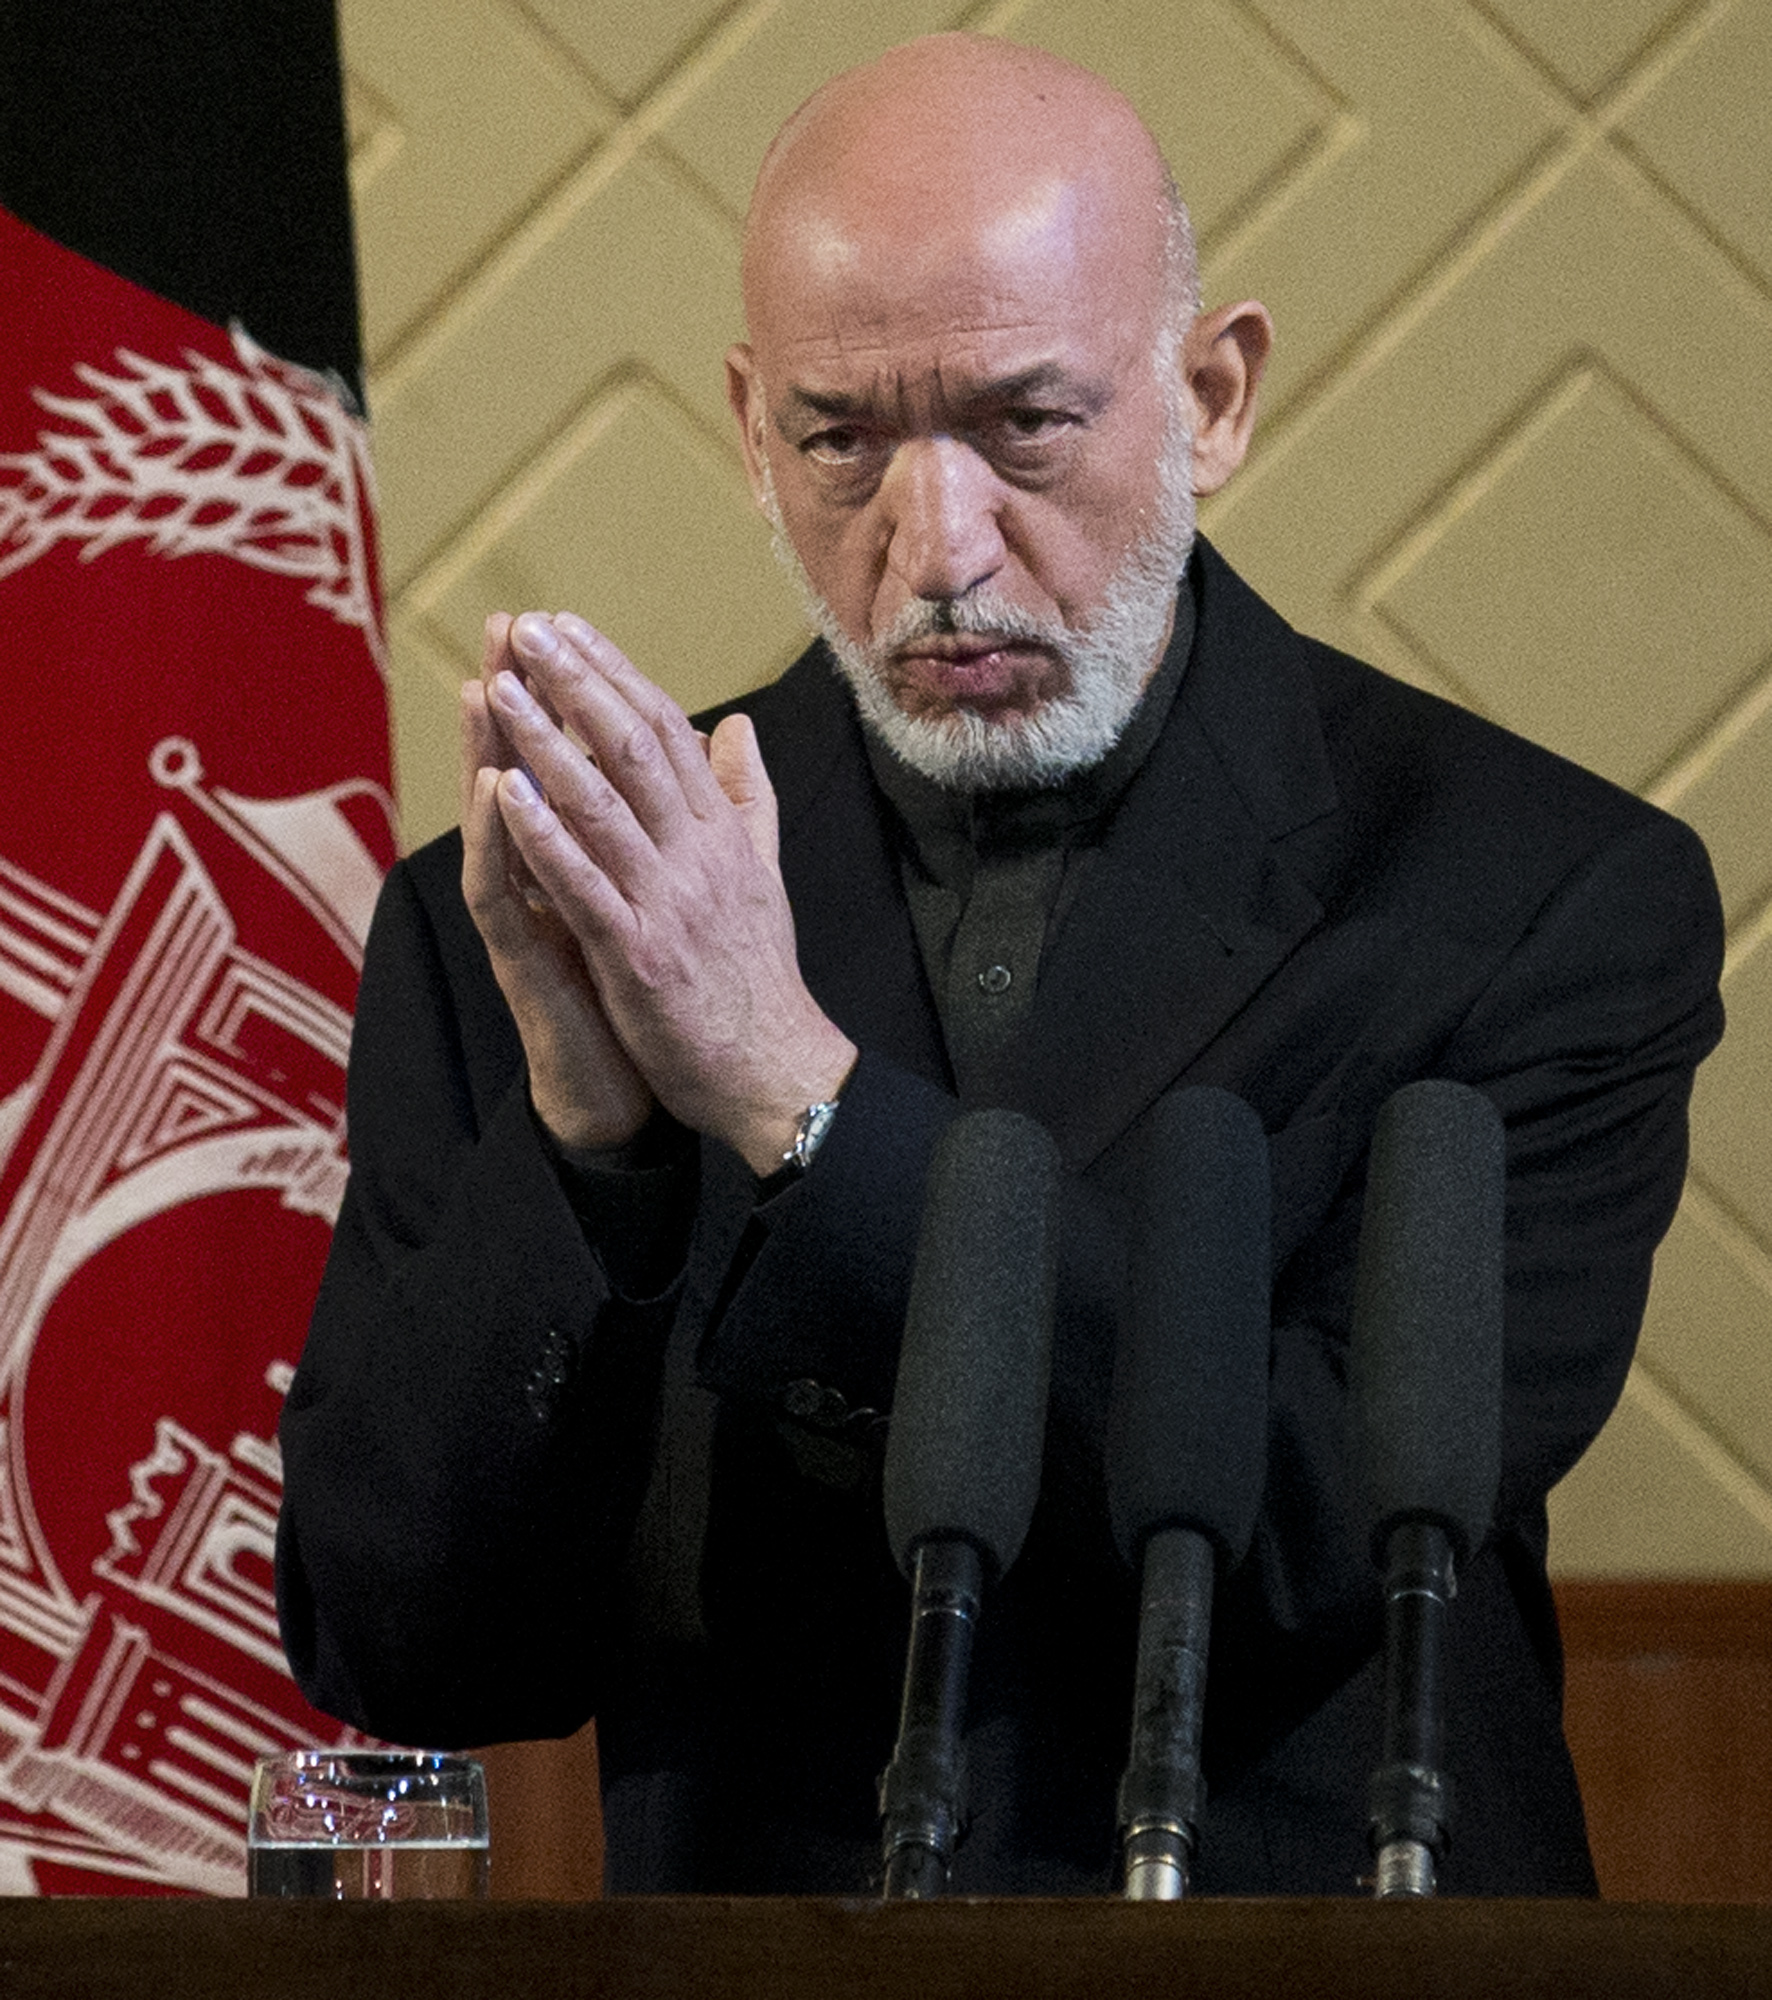 Afghan President Hamid Karzai during a ceremony at Kabul University on May 9. (Anja Niedringhaus/AP)